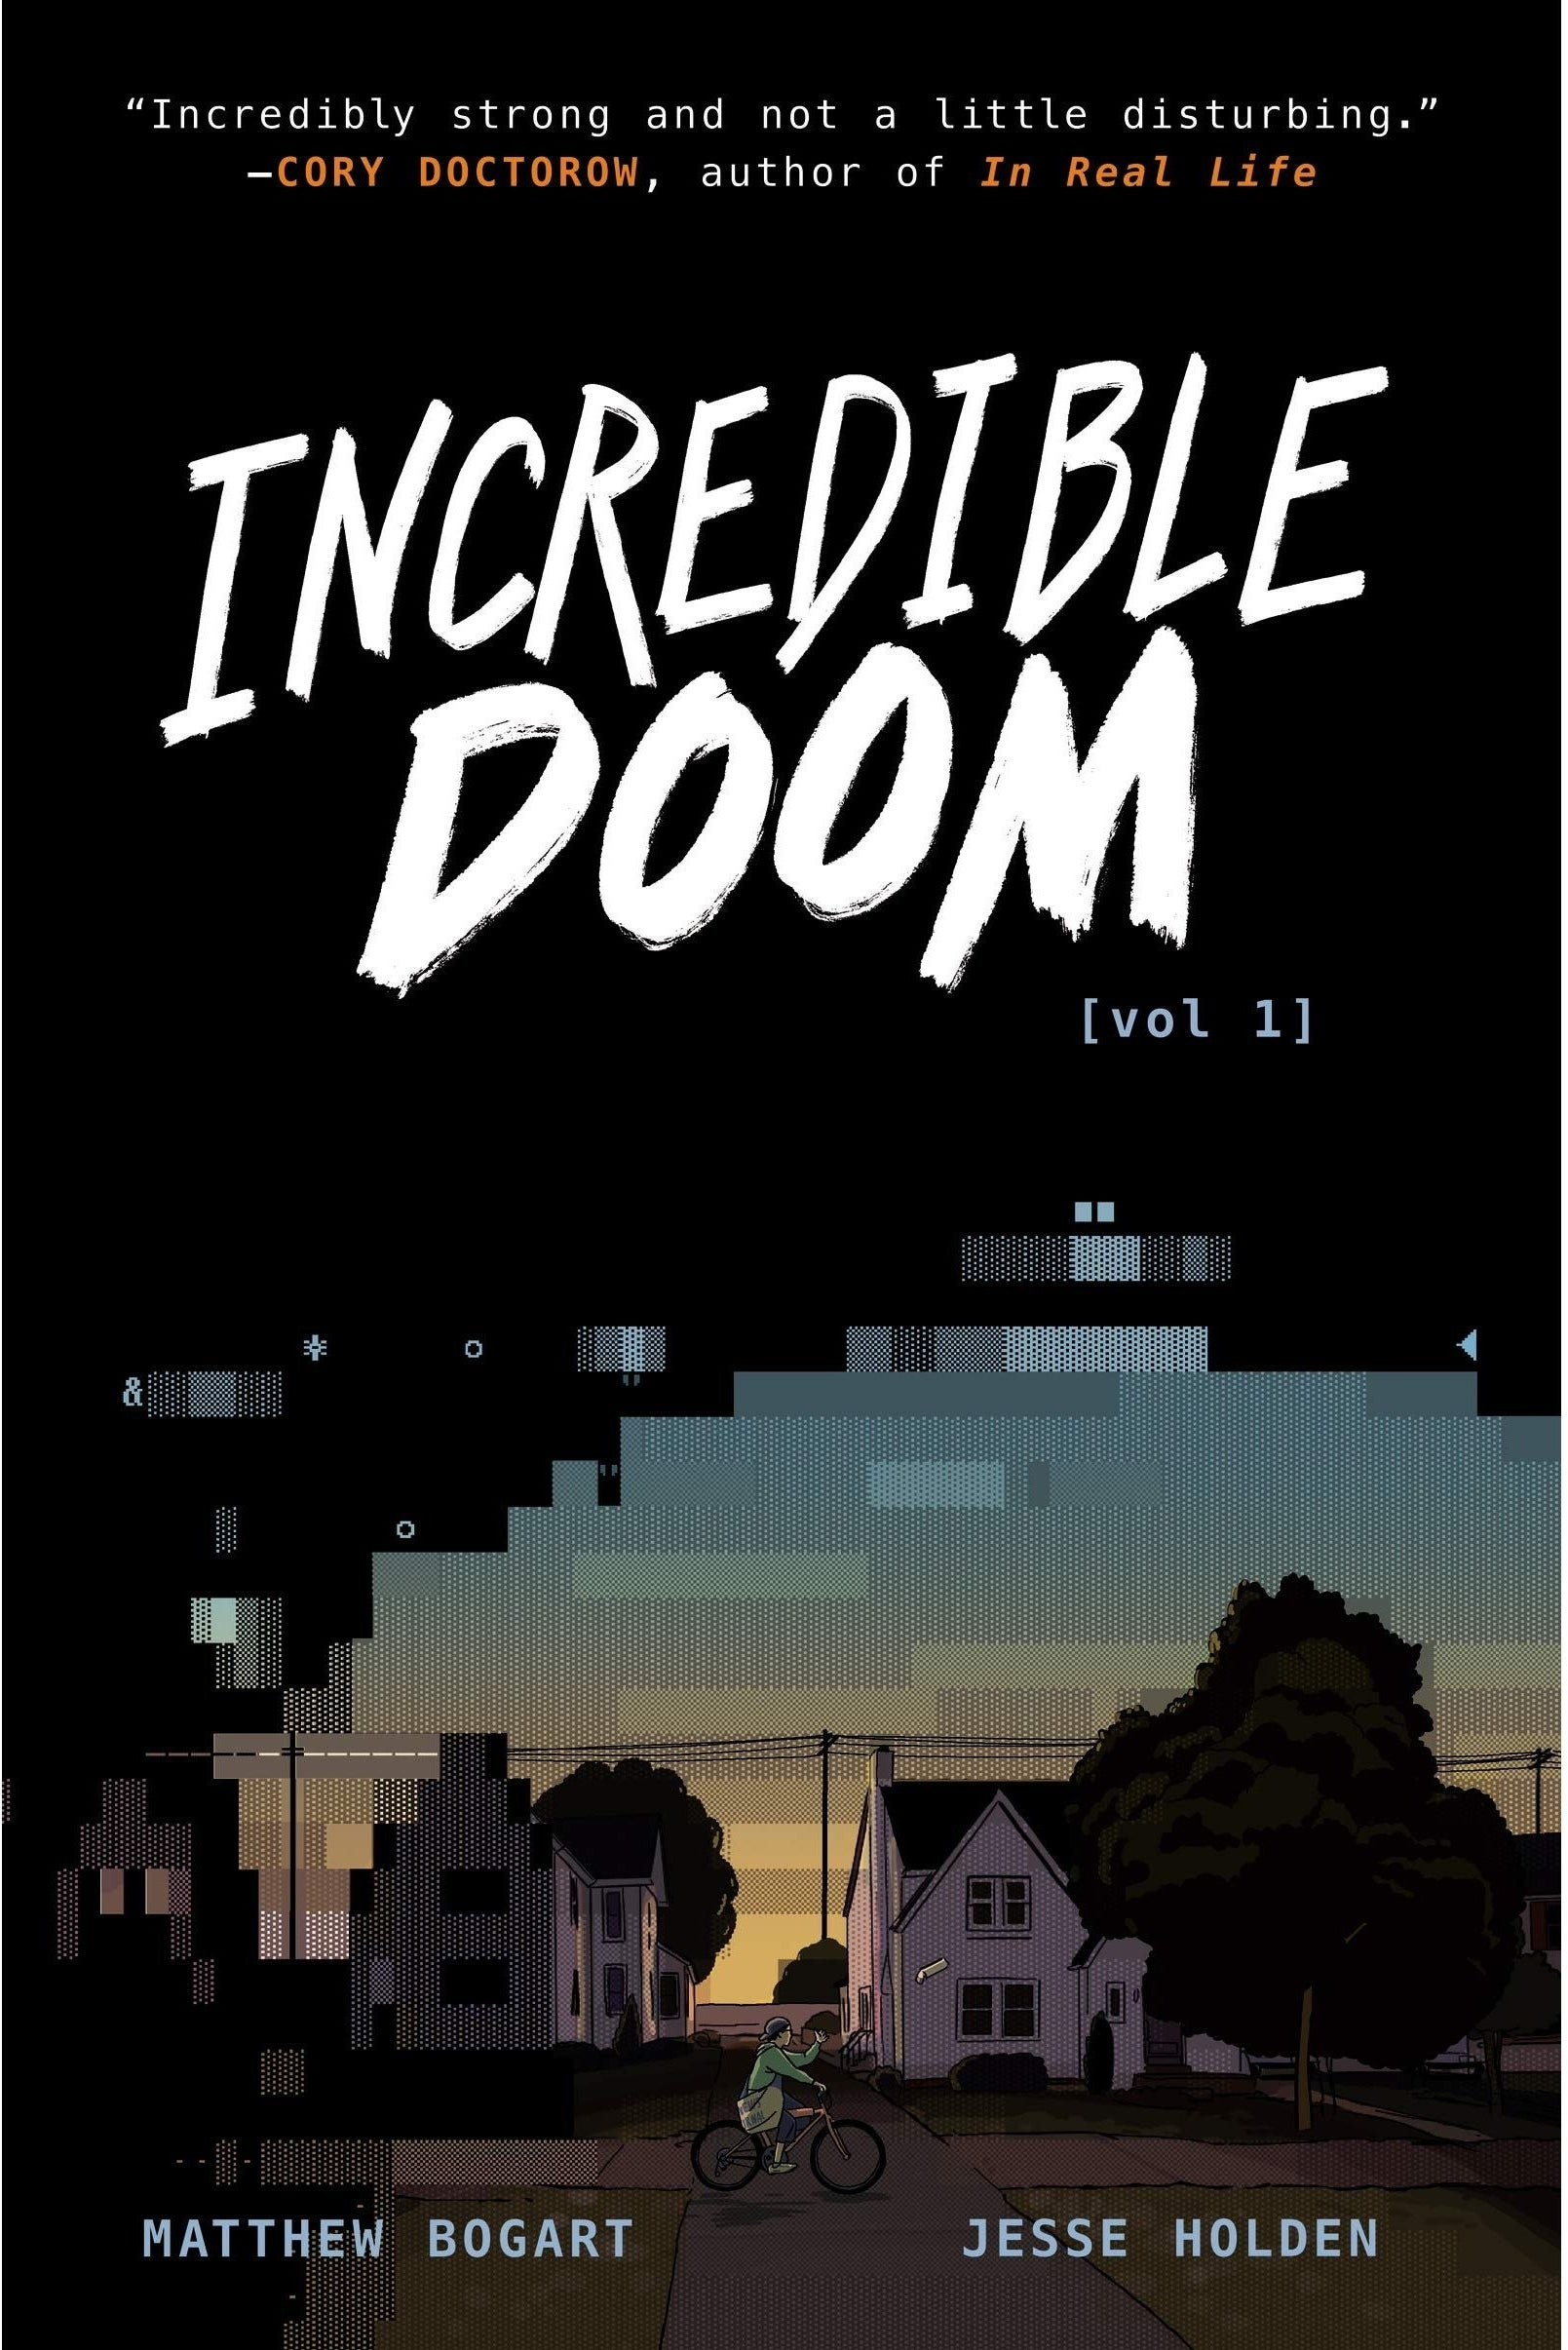 the book cover with a digitized suburban landscape